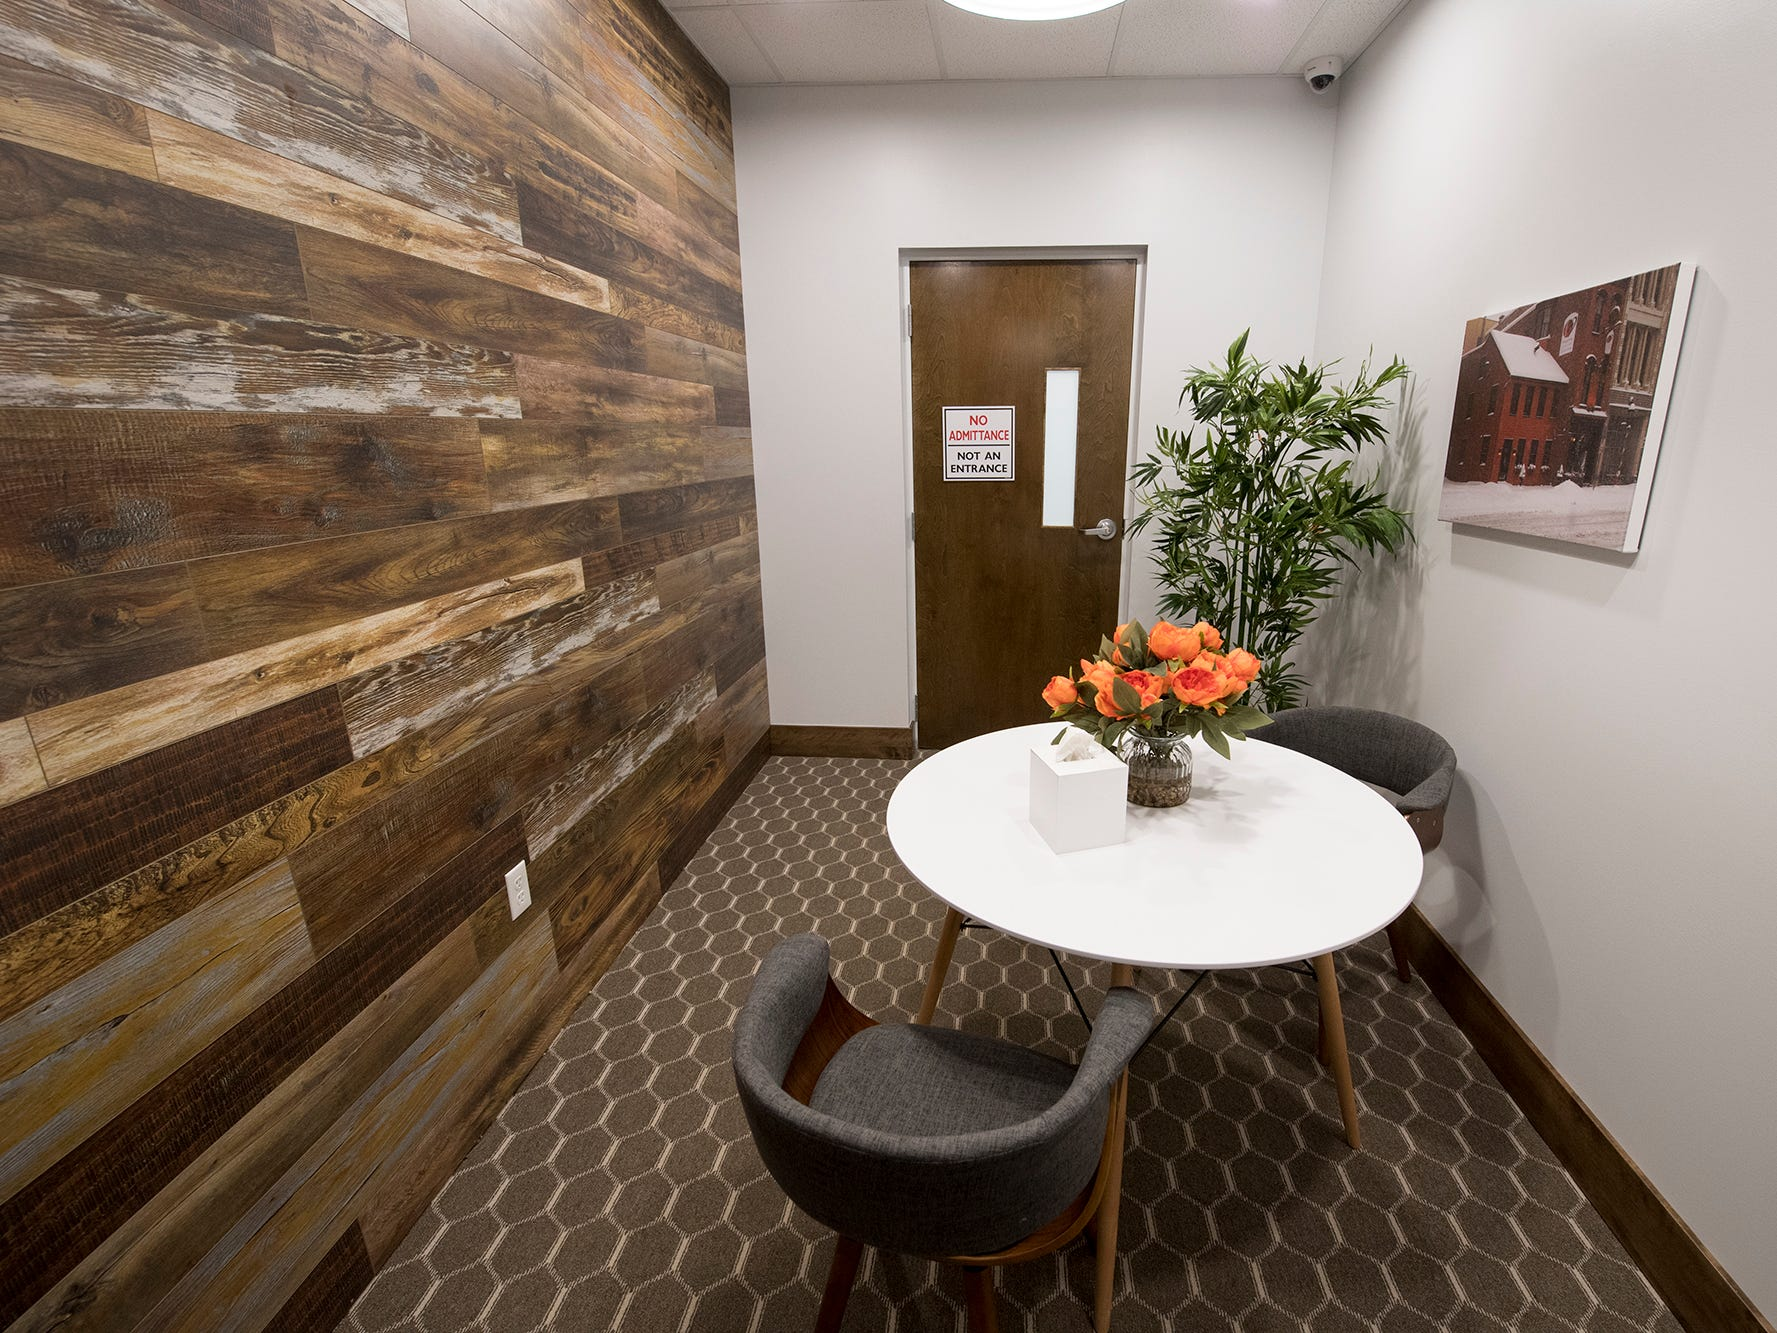 A consulting room at the Rise medical marijuana dispensary in West Manchester Township. This is where a customer will consult with staff before they enter the product room.